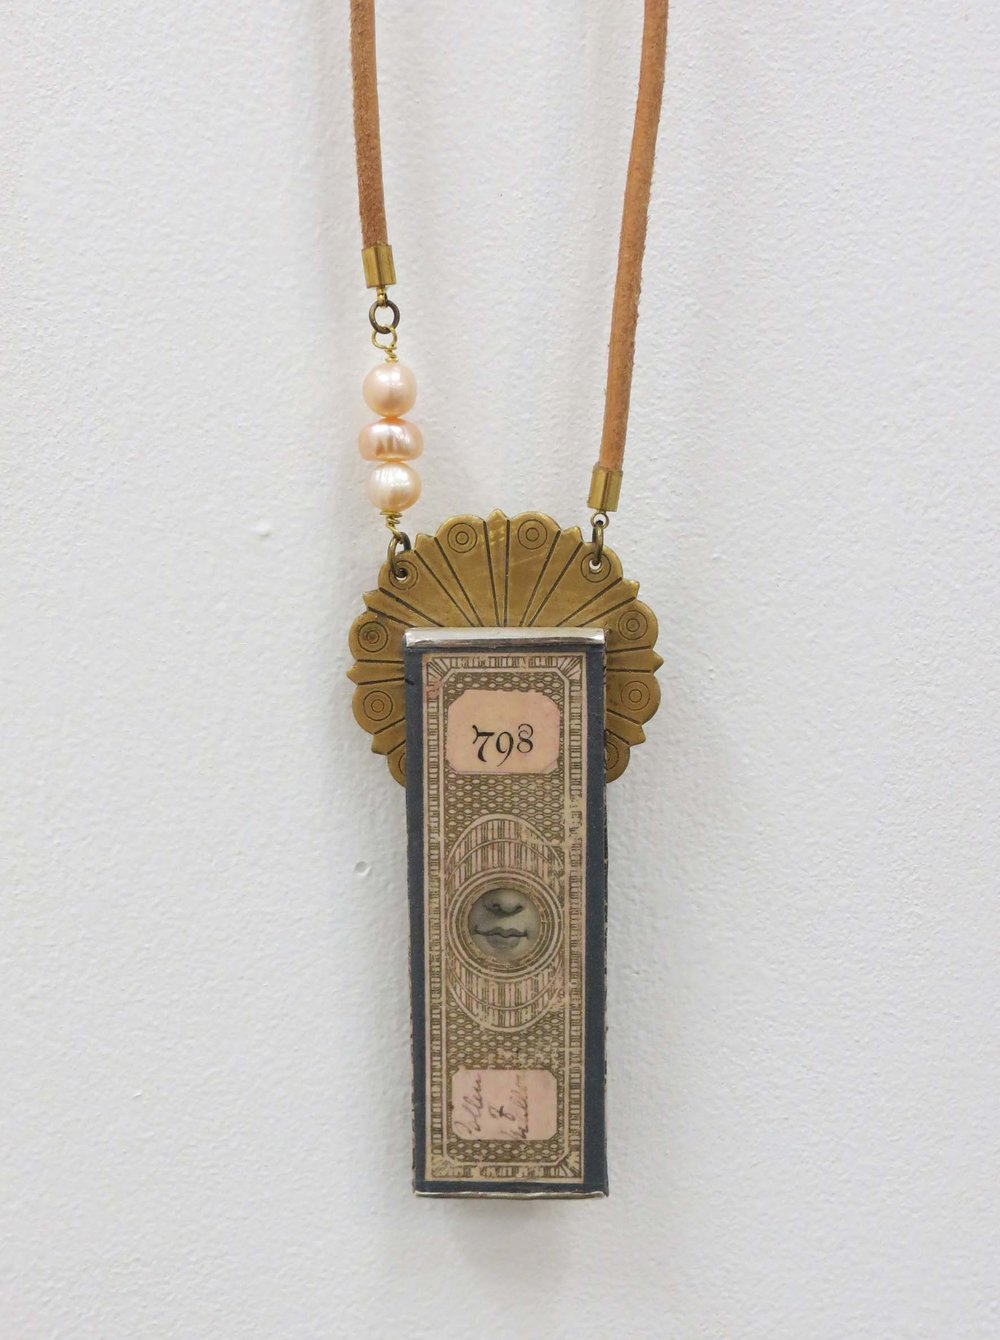 5. Kathy Aspinall, 'Lubrum 798', 2018, Victorian papered slide, brass, antique paper, leather, freshwater pearls, silver, necklace, $495